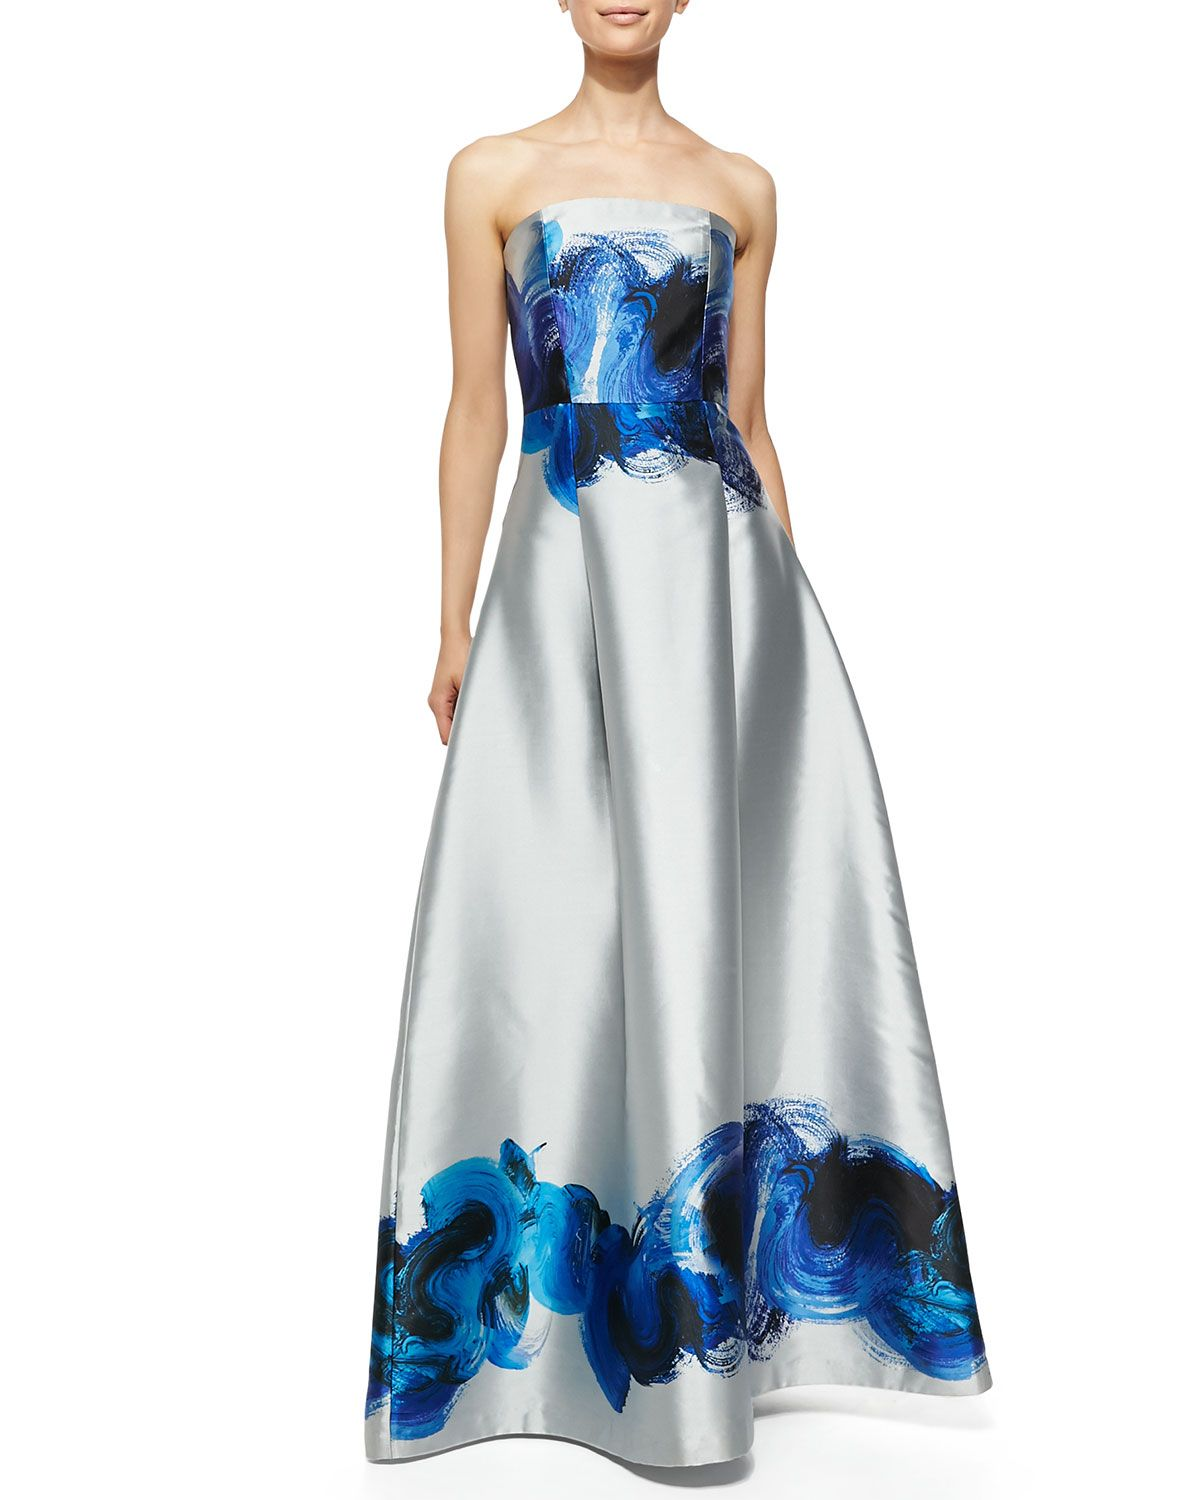 Neiman marcus dresses for weddings  NOIR Sachin u Babi Astor Strapless Brushstroke Swirl Gown jaglady